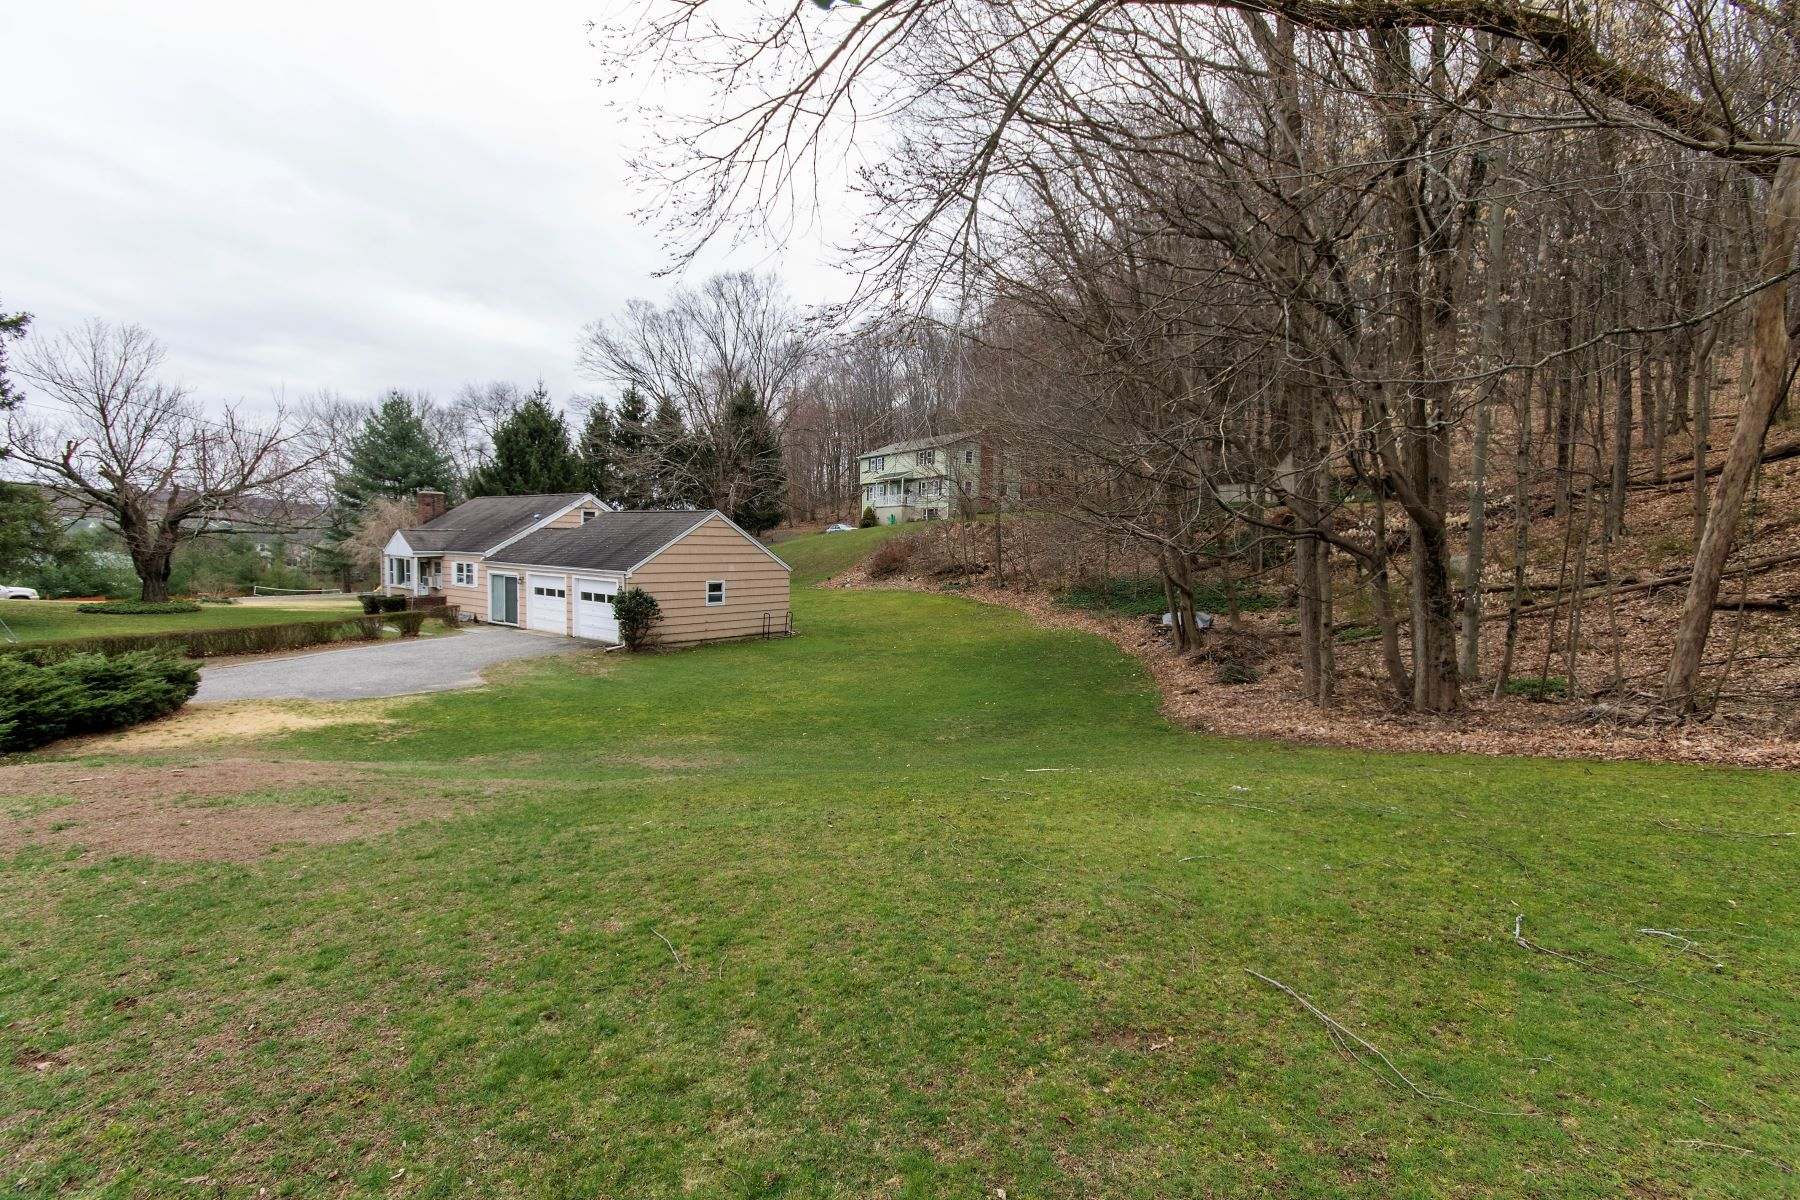 Single Family Home for Sale at First Time On The Market 162 Shelter Rock Rd Danbury, 06810 United States